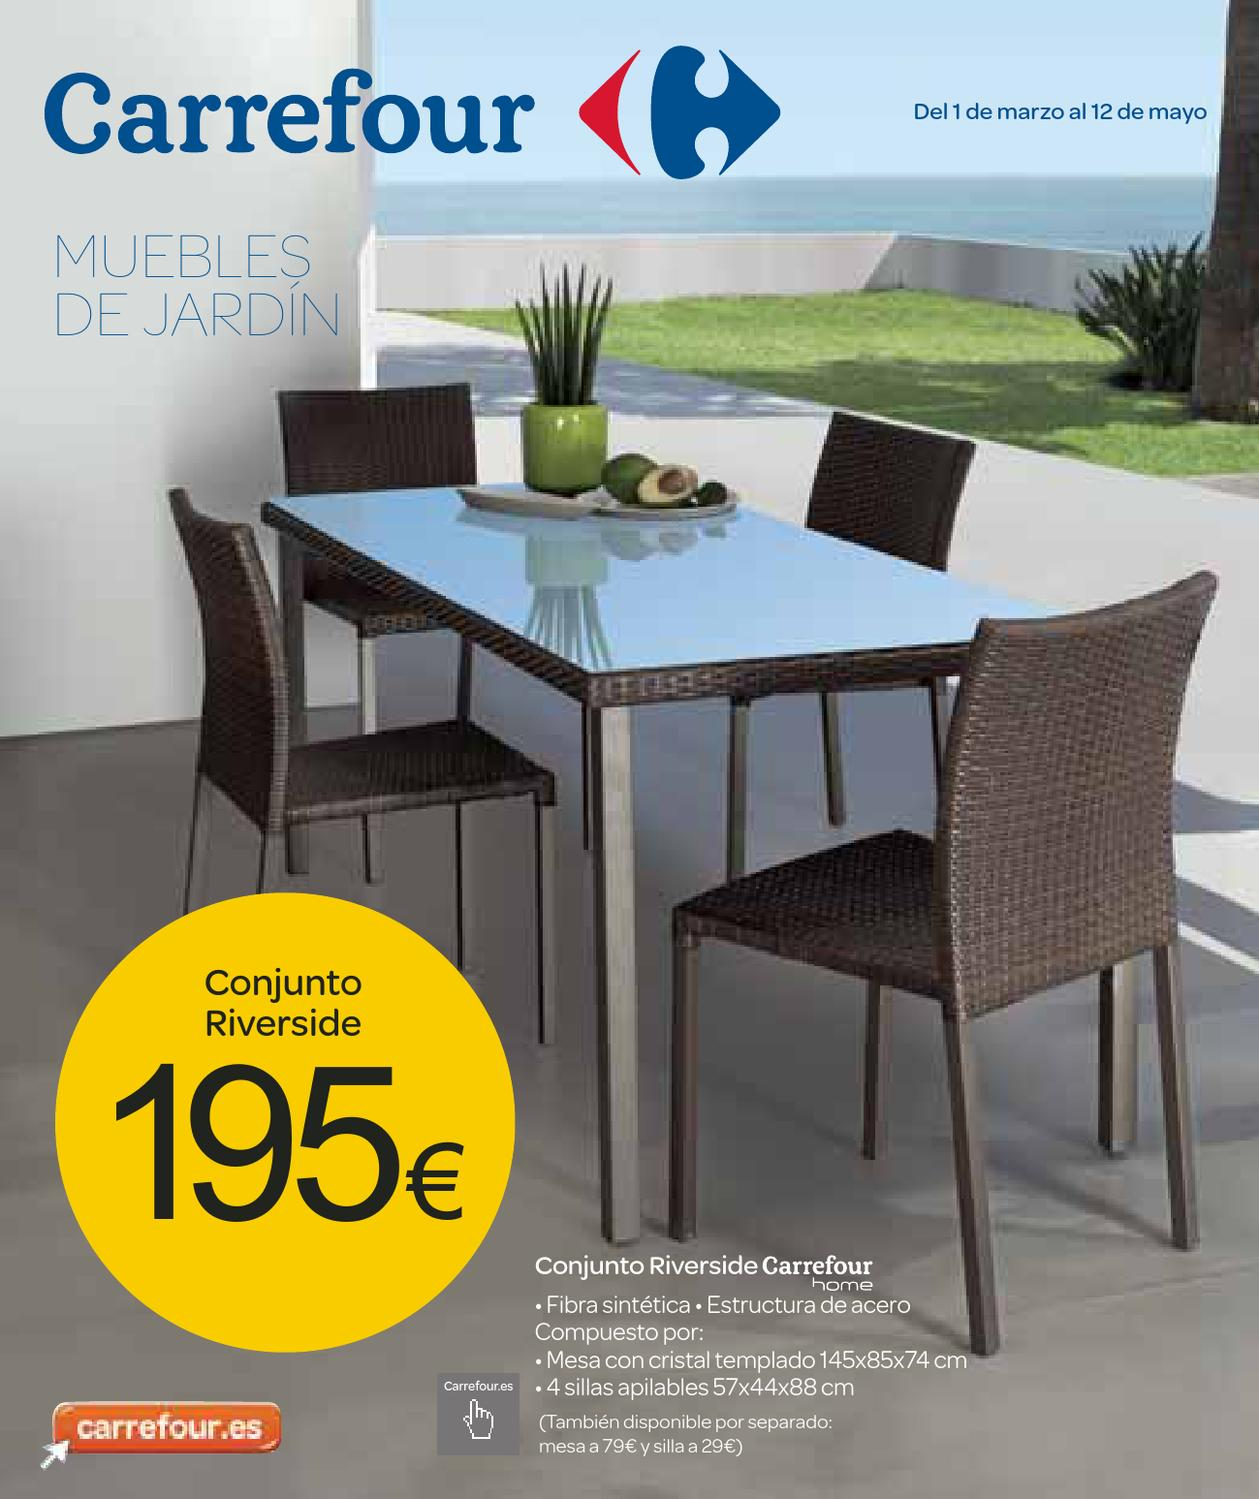 Issuu catalogo de muebles de jardin carrefour by for Rebajas muebles de jardin